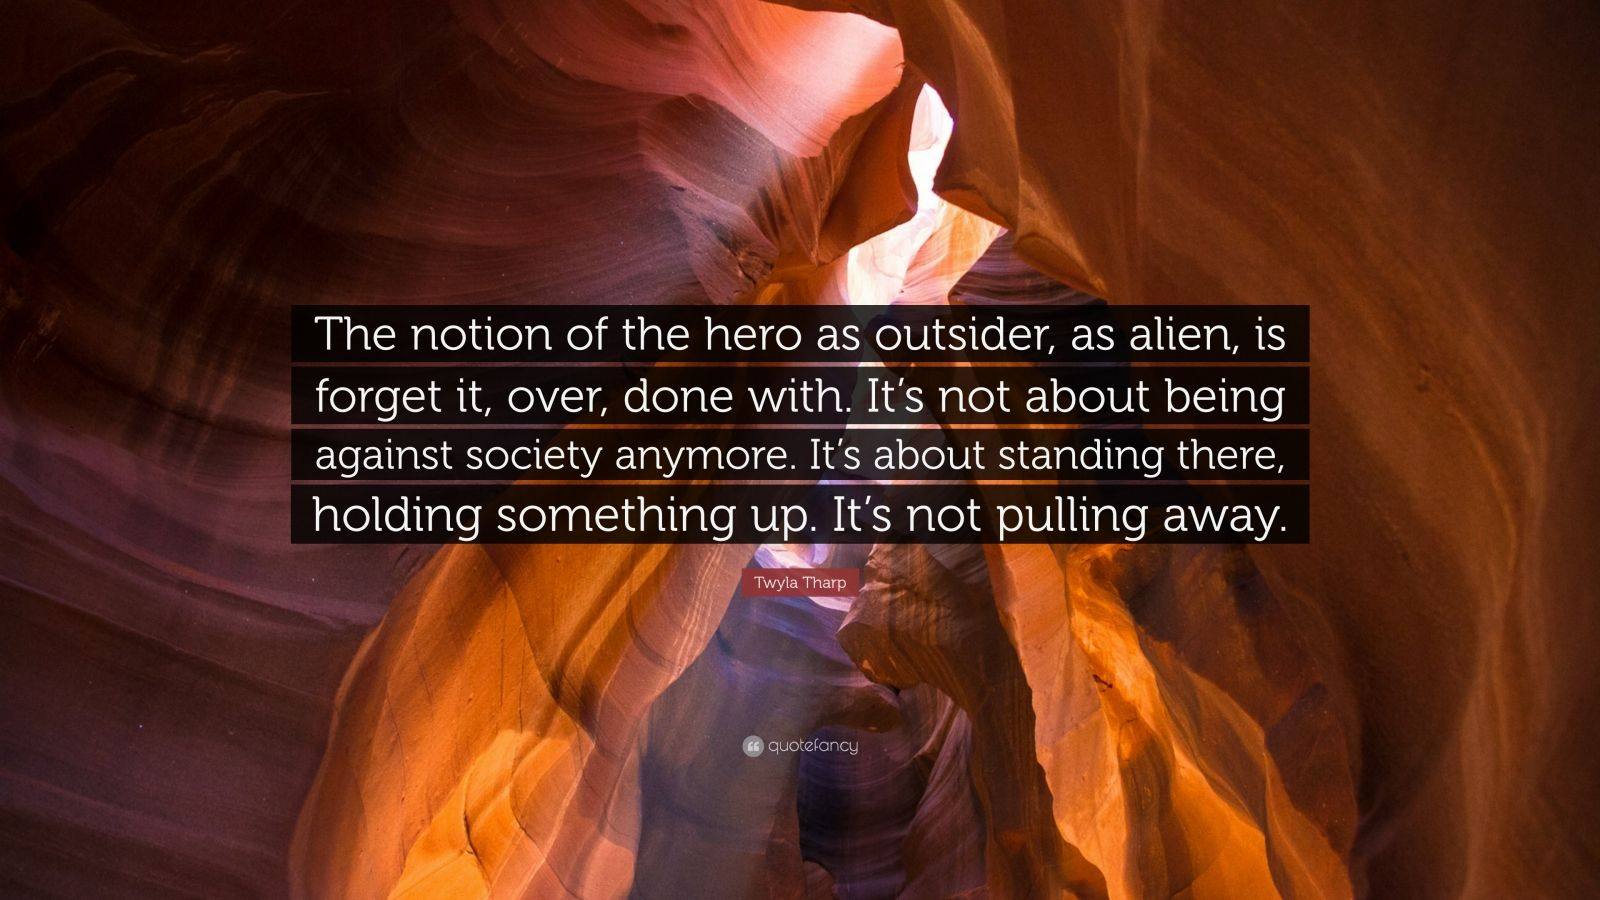 """Twyla Tharp Quote: """"The notion of the hero as outsider, as alien, is forget it, over, done with. It's not about being against society anymore. It's about standing there, holding something up. It's not pulling away."""""""